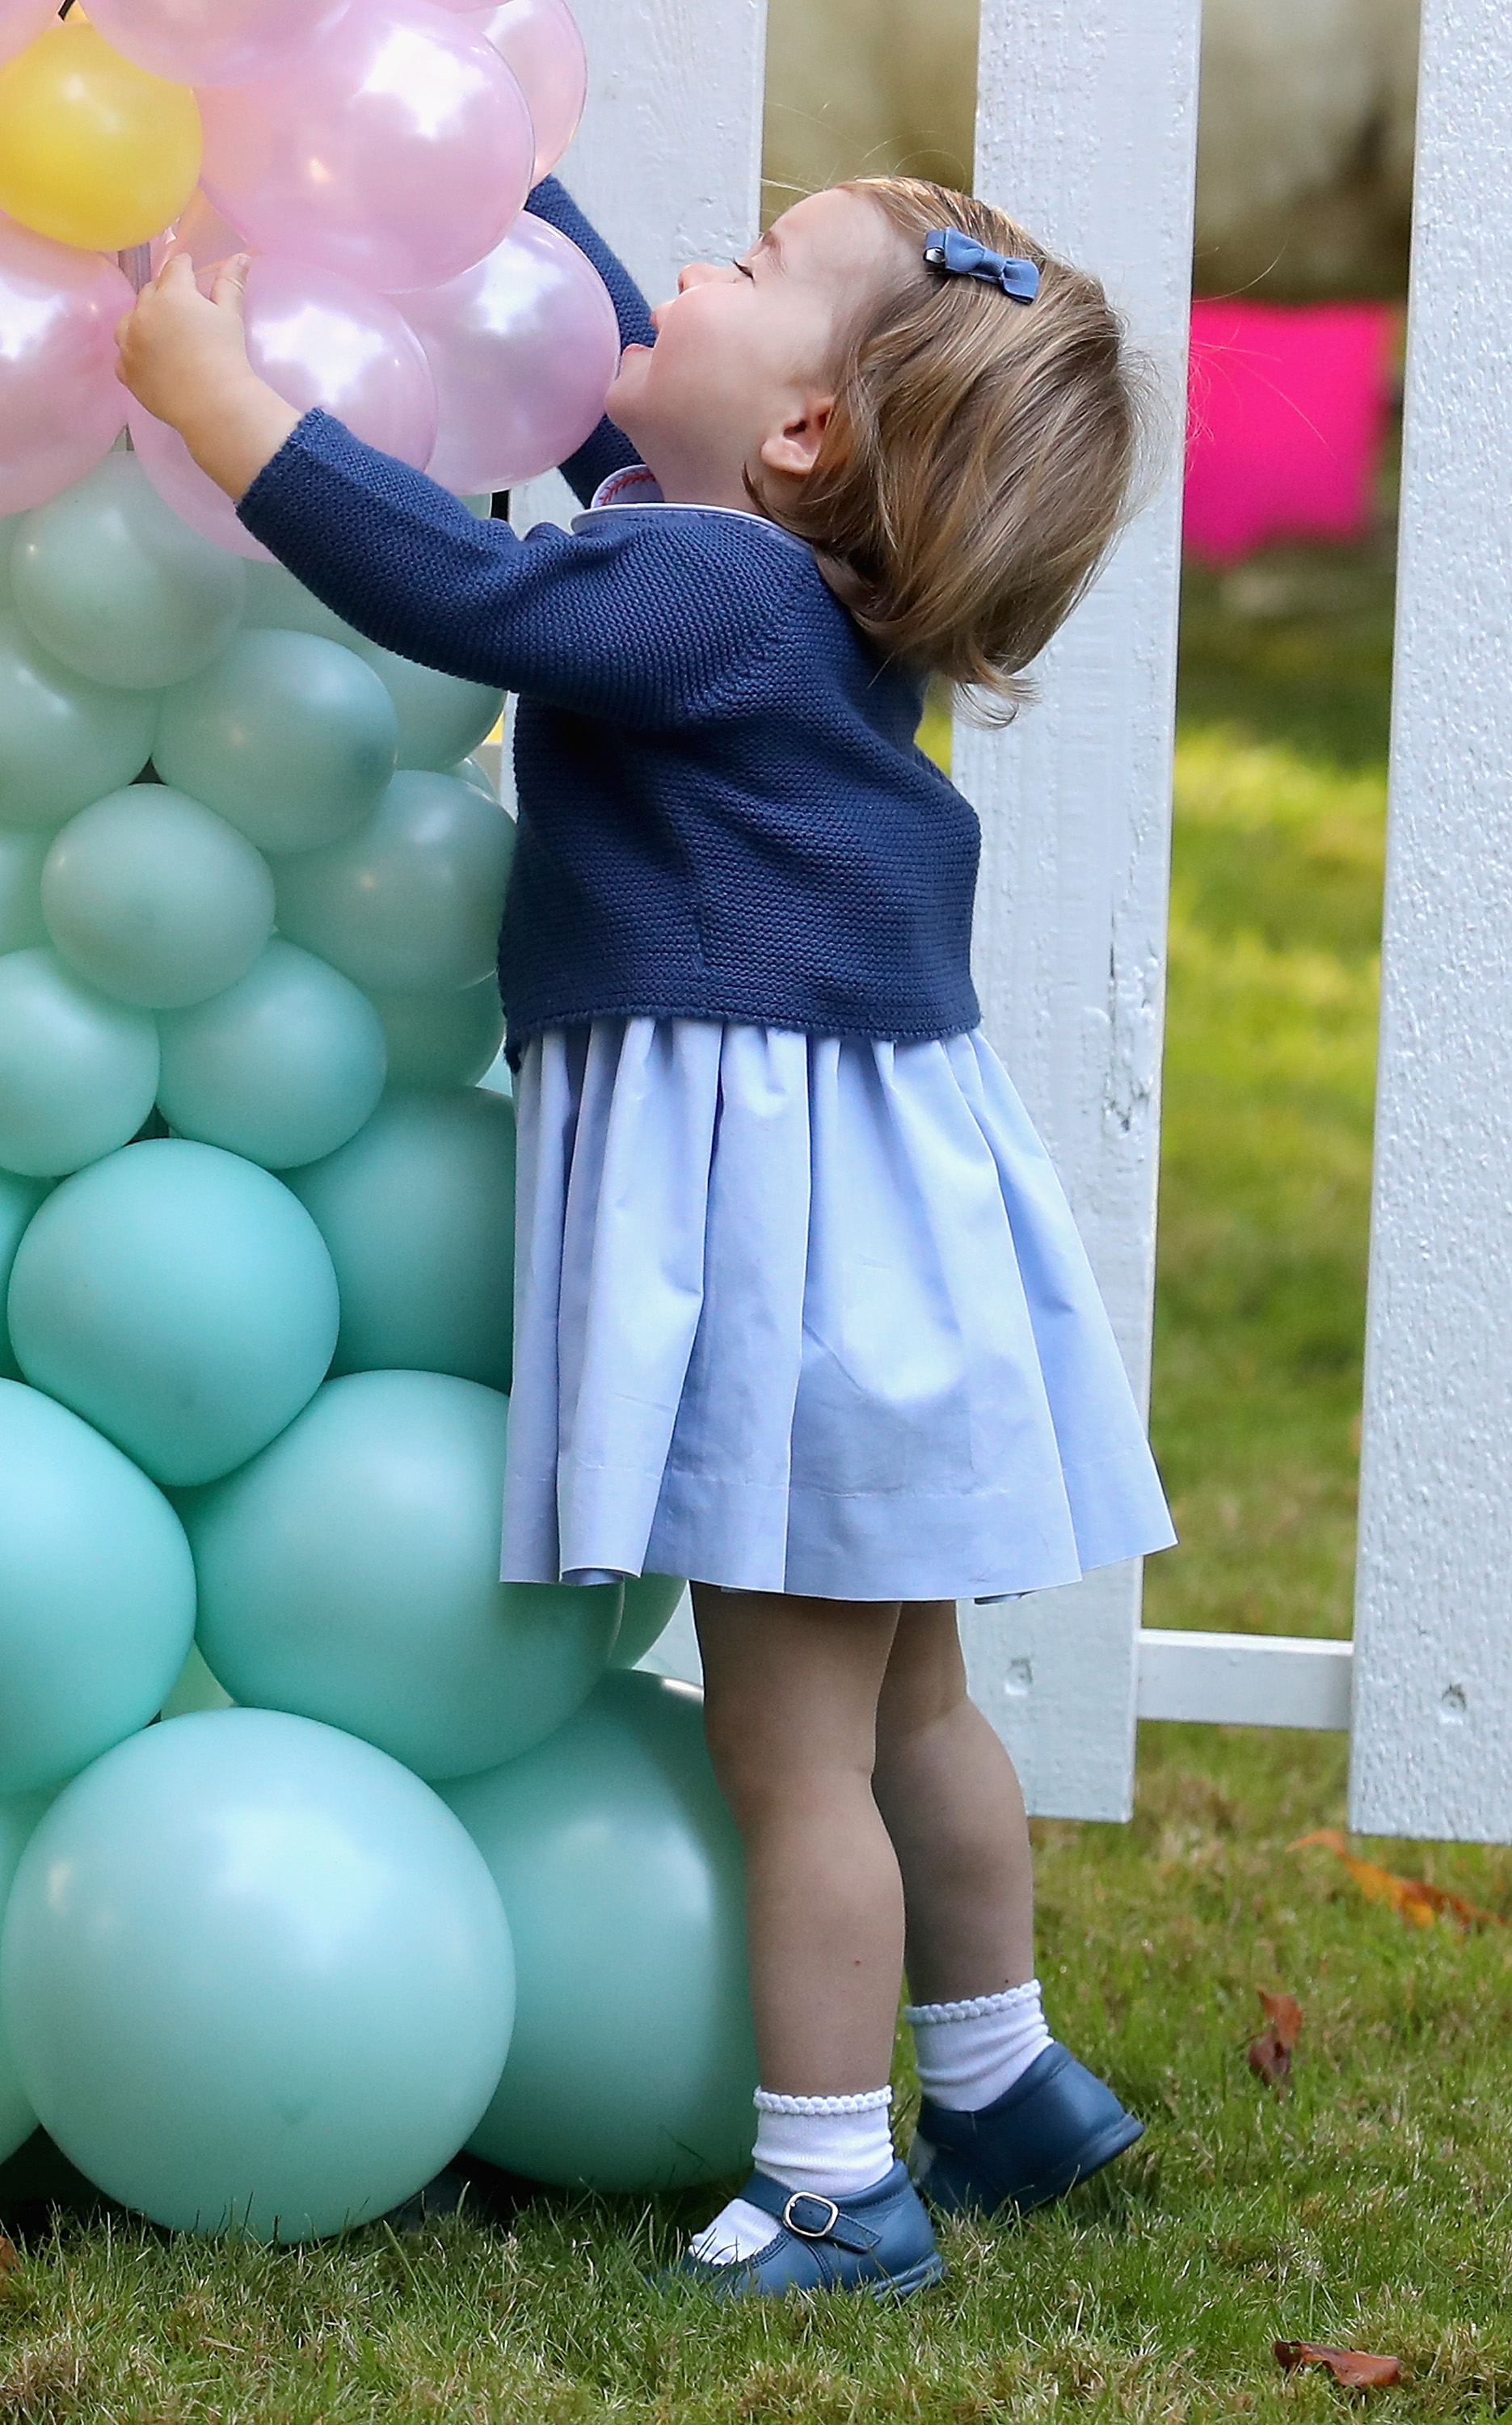 VICTORIA, BC - SEPTEMBER 29:  Princess Charlotte of Cambridge at a children's party for Military families during the Royal Tour of Canada on September 29, 2016 in Victoria, Canada. Prince William, Duke of Cambridge, Catherine, Duchess of Cambridge, Prince George and Princess Charlotte are visiting Canada as part of an eight day visit to the country taking in areas such as Bella Bella, Whitehorse and Kelowna  (Photo by Chris Jackson - Pool/Getty Images)